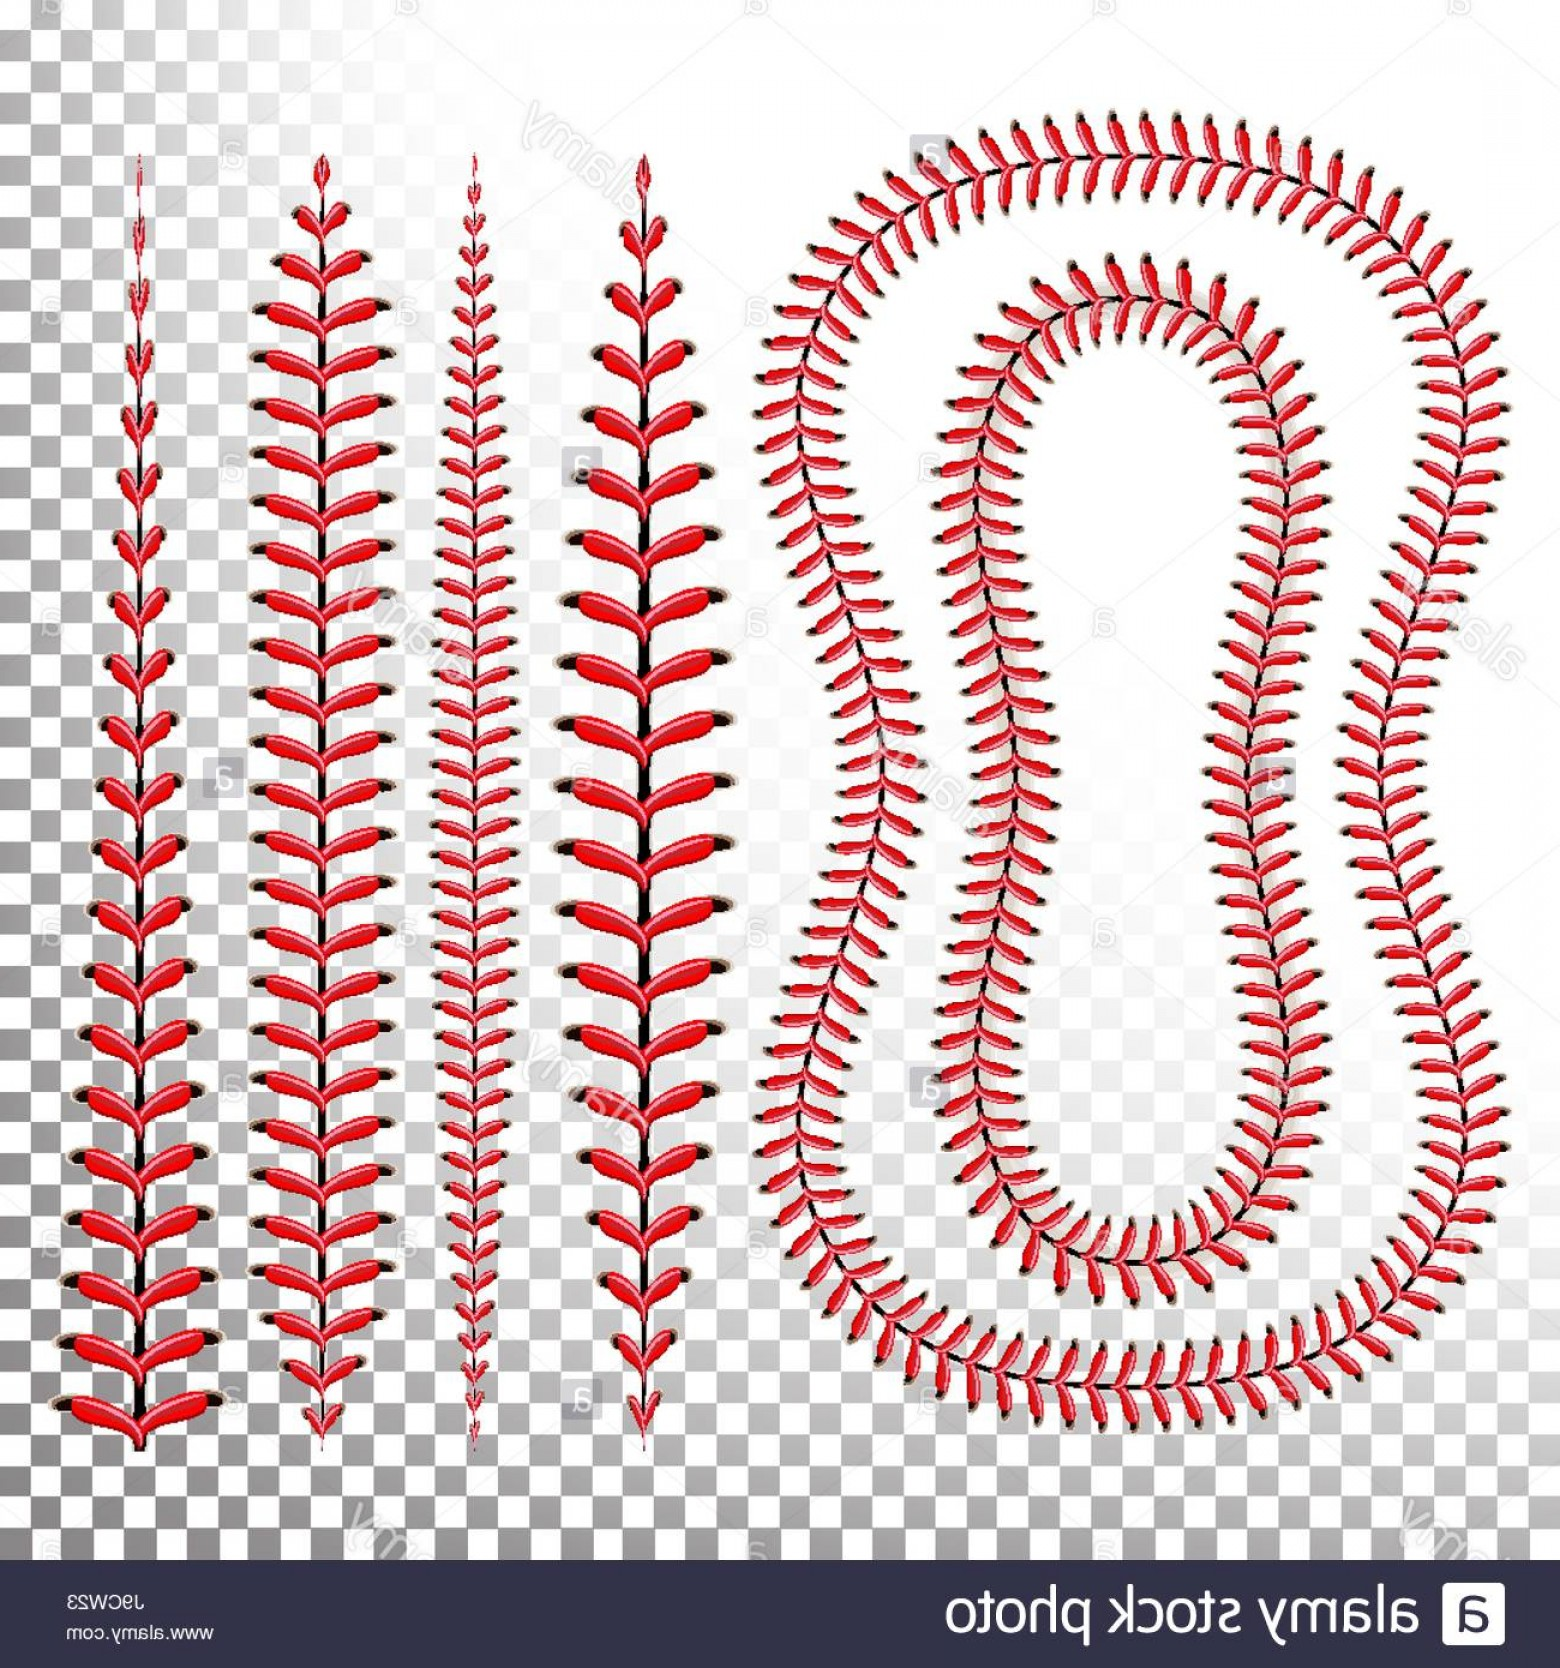 Laces Basball Vector: Stock Photo Baseball Stitches Vector Lace From A Baseball Isolated On Transparent